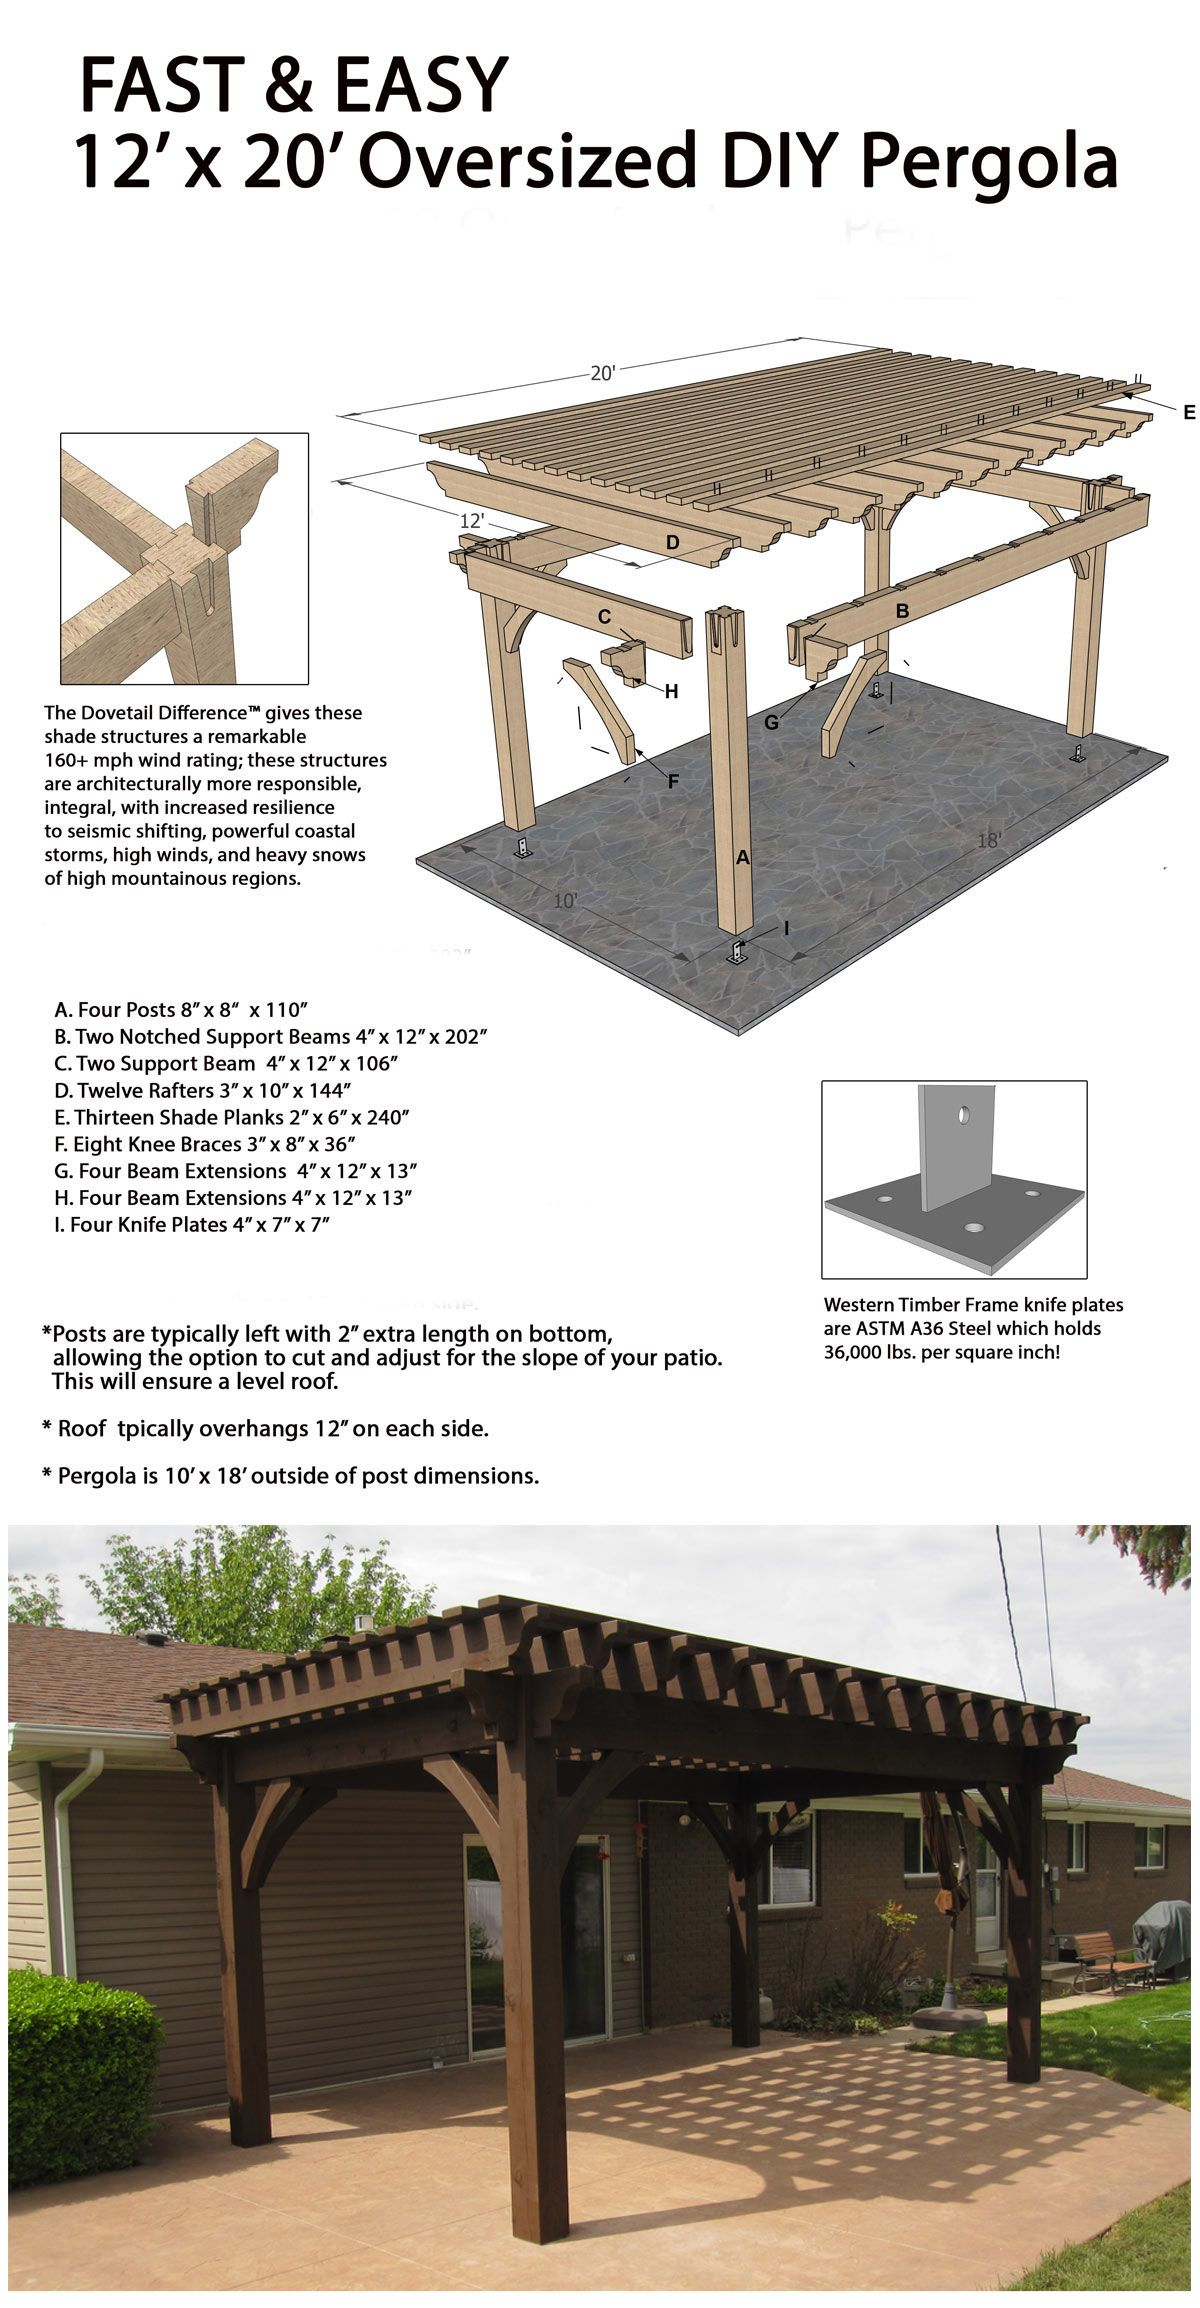 Easily Build A Fast Diy Beautiful Backyard Shade Structure Outdoor Pergola Backyard Shade Diy Pergola